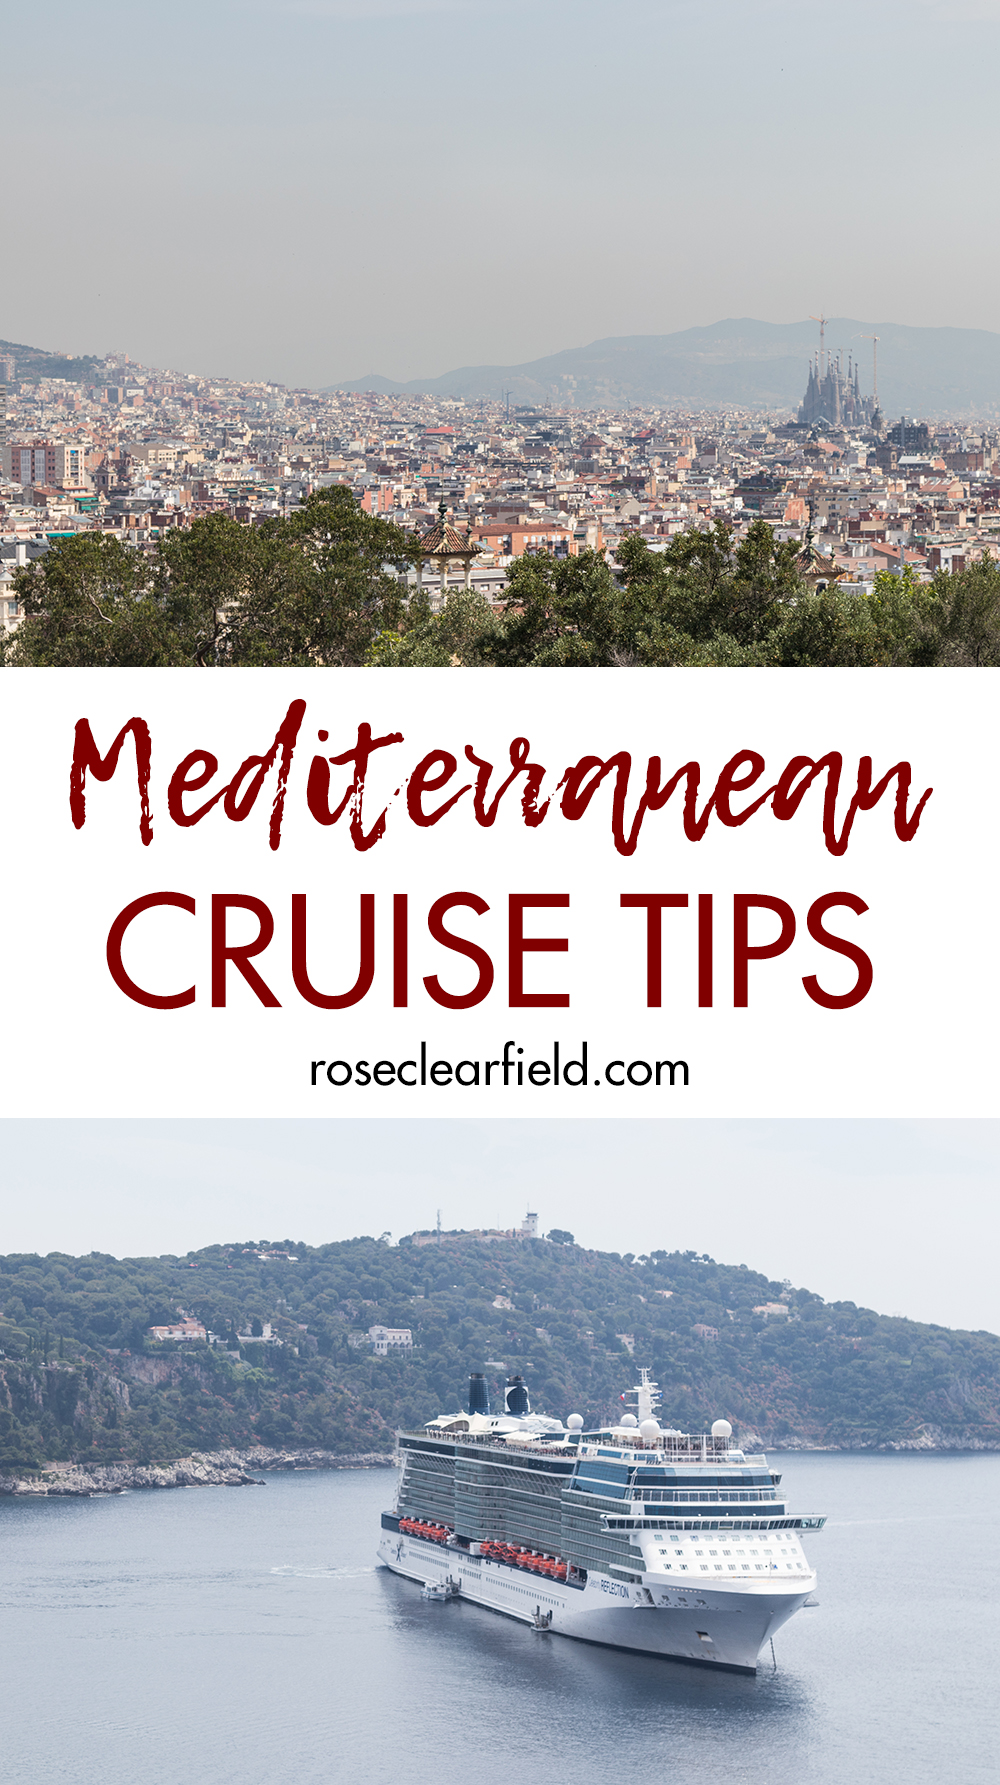 Mediterranean cruise tips. Make the most of this once in a lifetime travel experience! #Mediterraneancruise #cruisetips #Mediterraneanvacation | https://www.roseclearfield.com